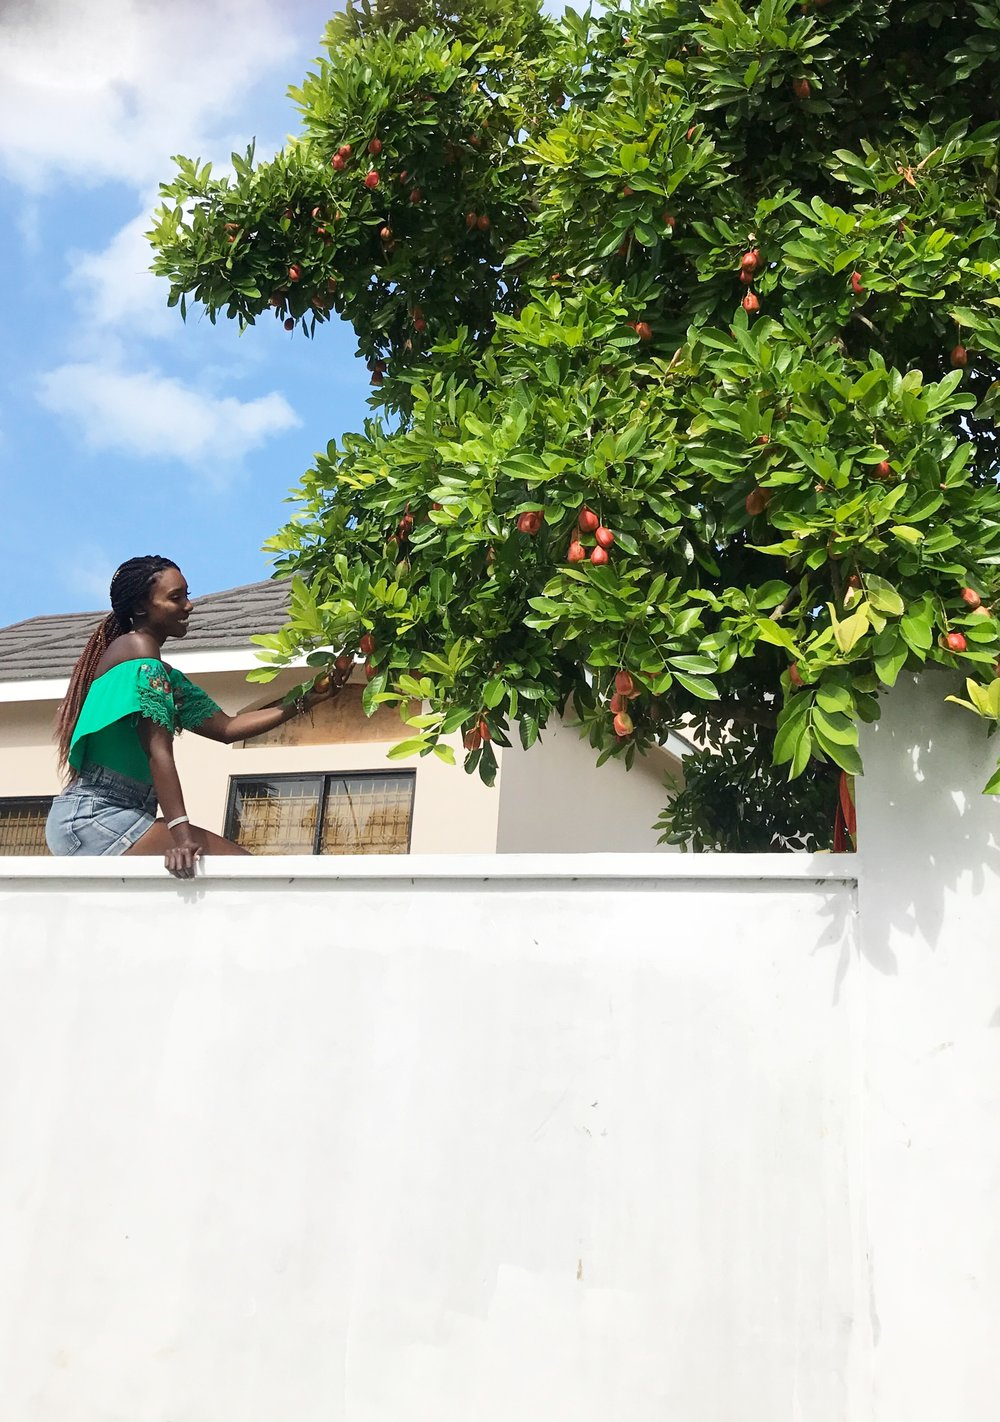 Picking-Fruit-Jamaica-Dayna-Bolden.JPG